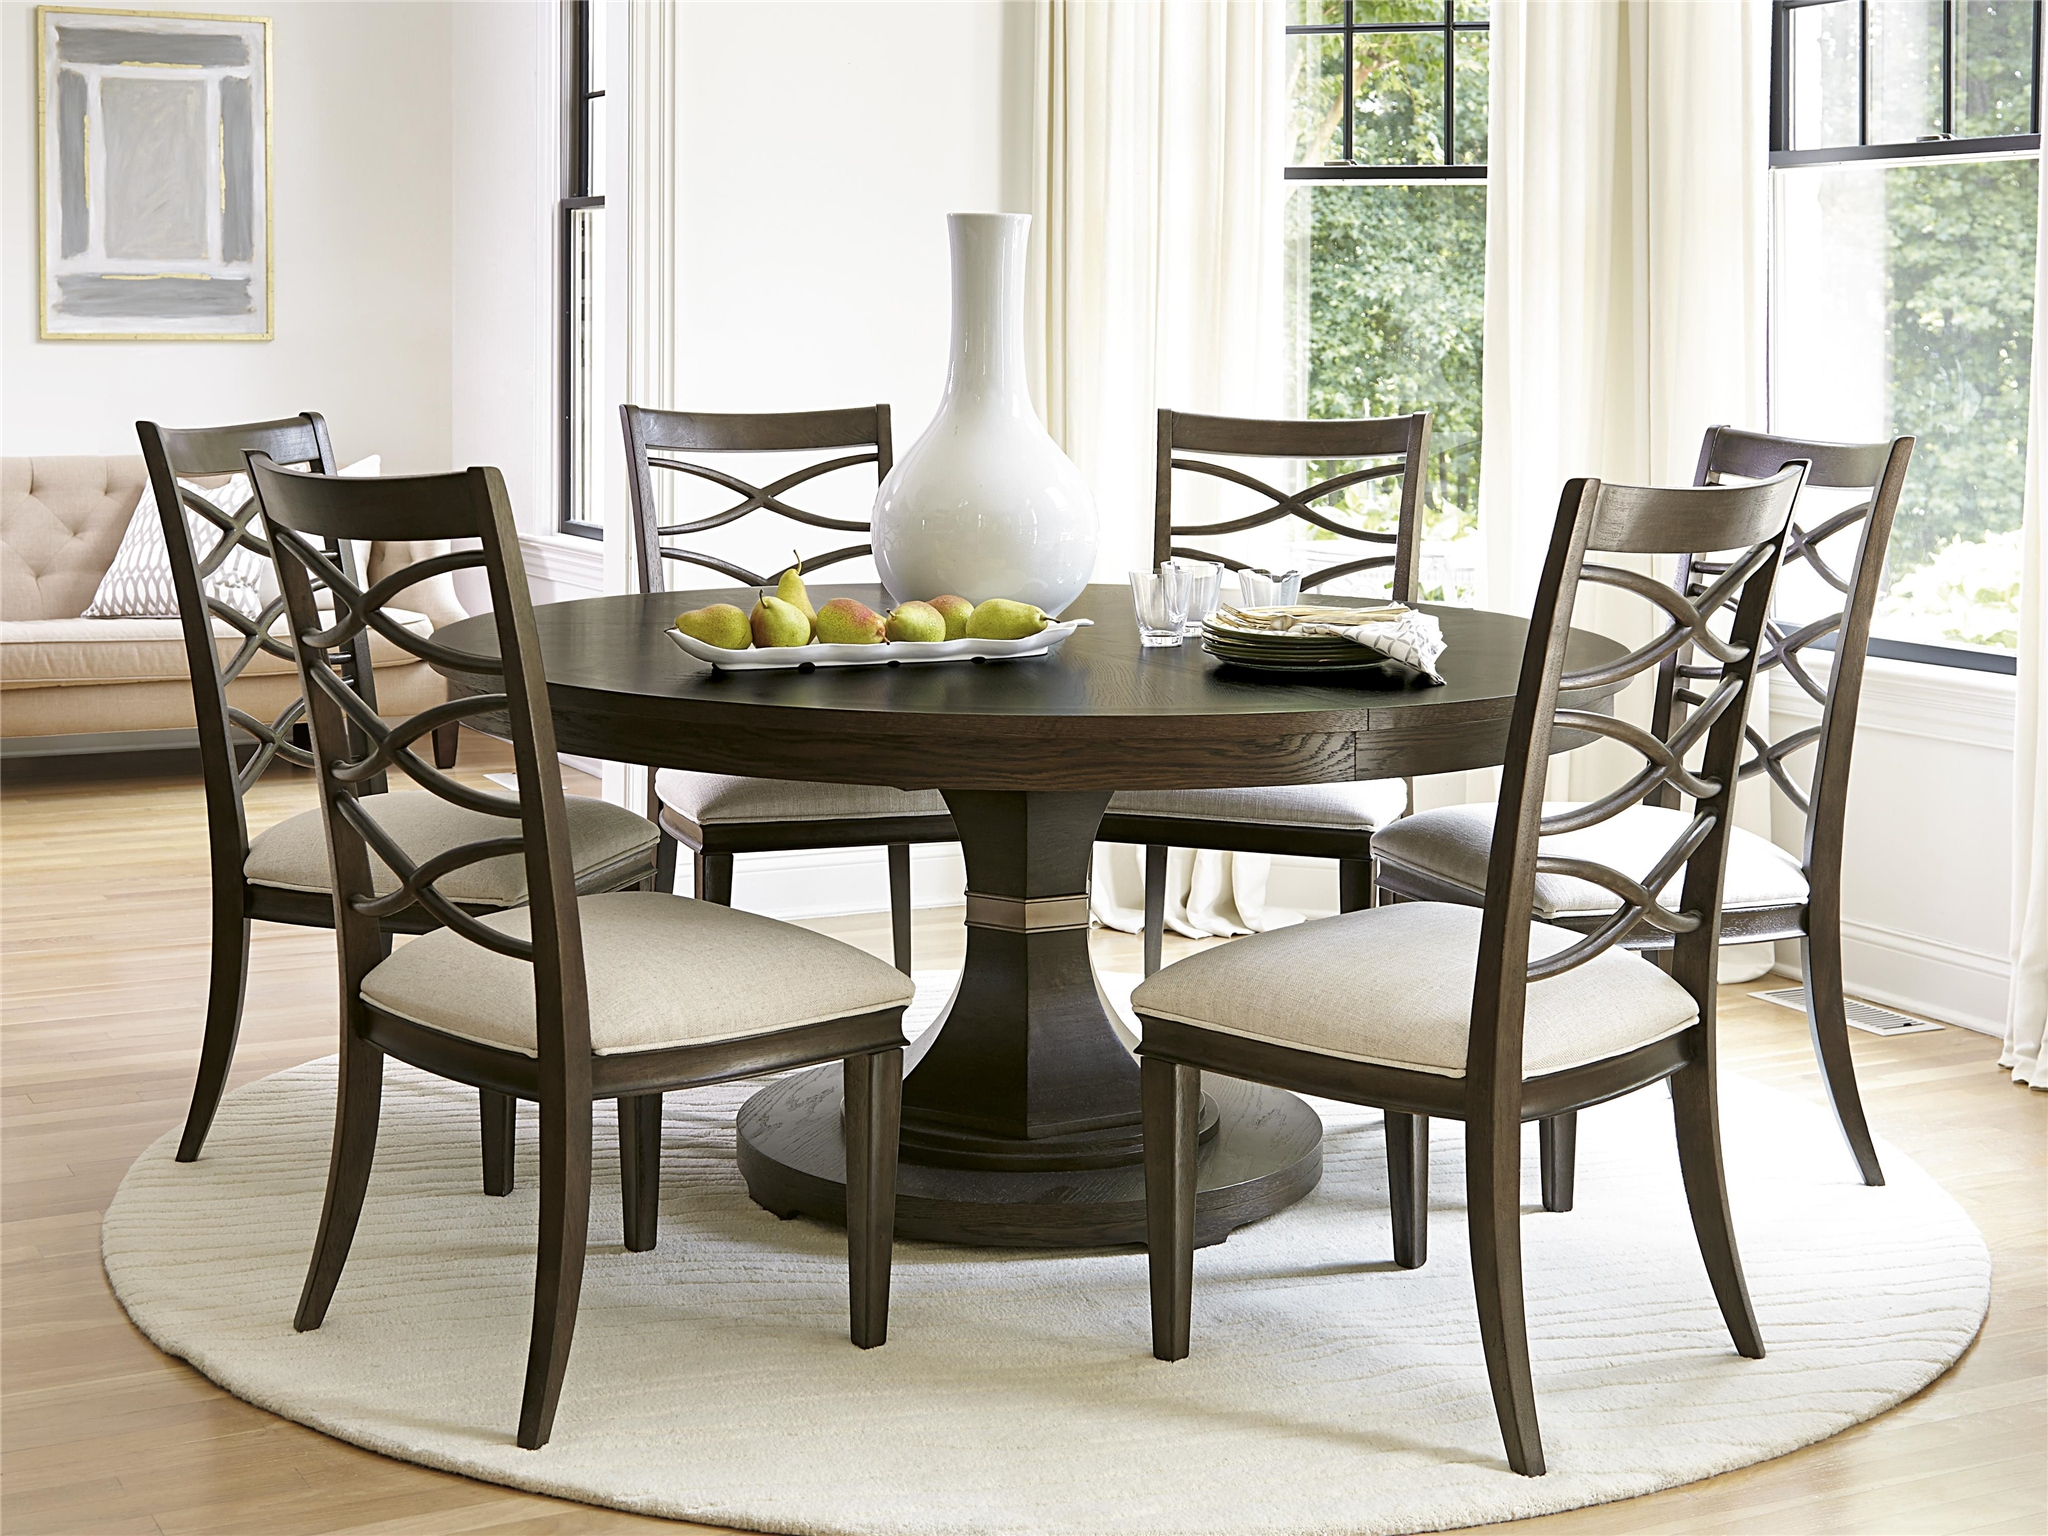 Brilliant Ideas Of Round Dining Room Table With Grady Round Dining In Best And Newest Grady Round Dining Tables (View 6 of 20)